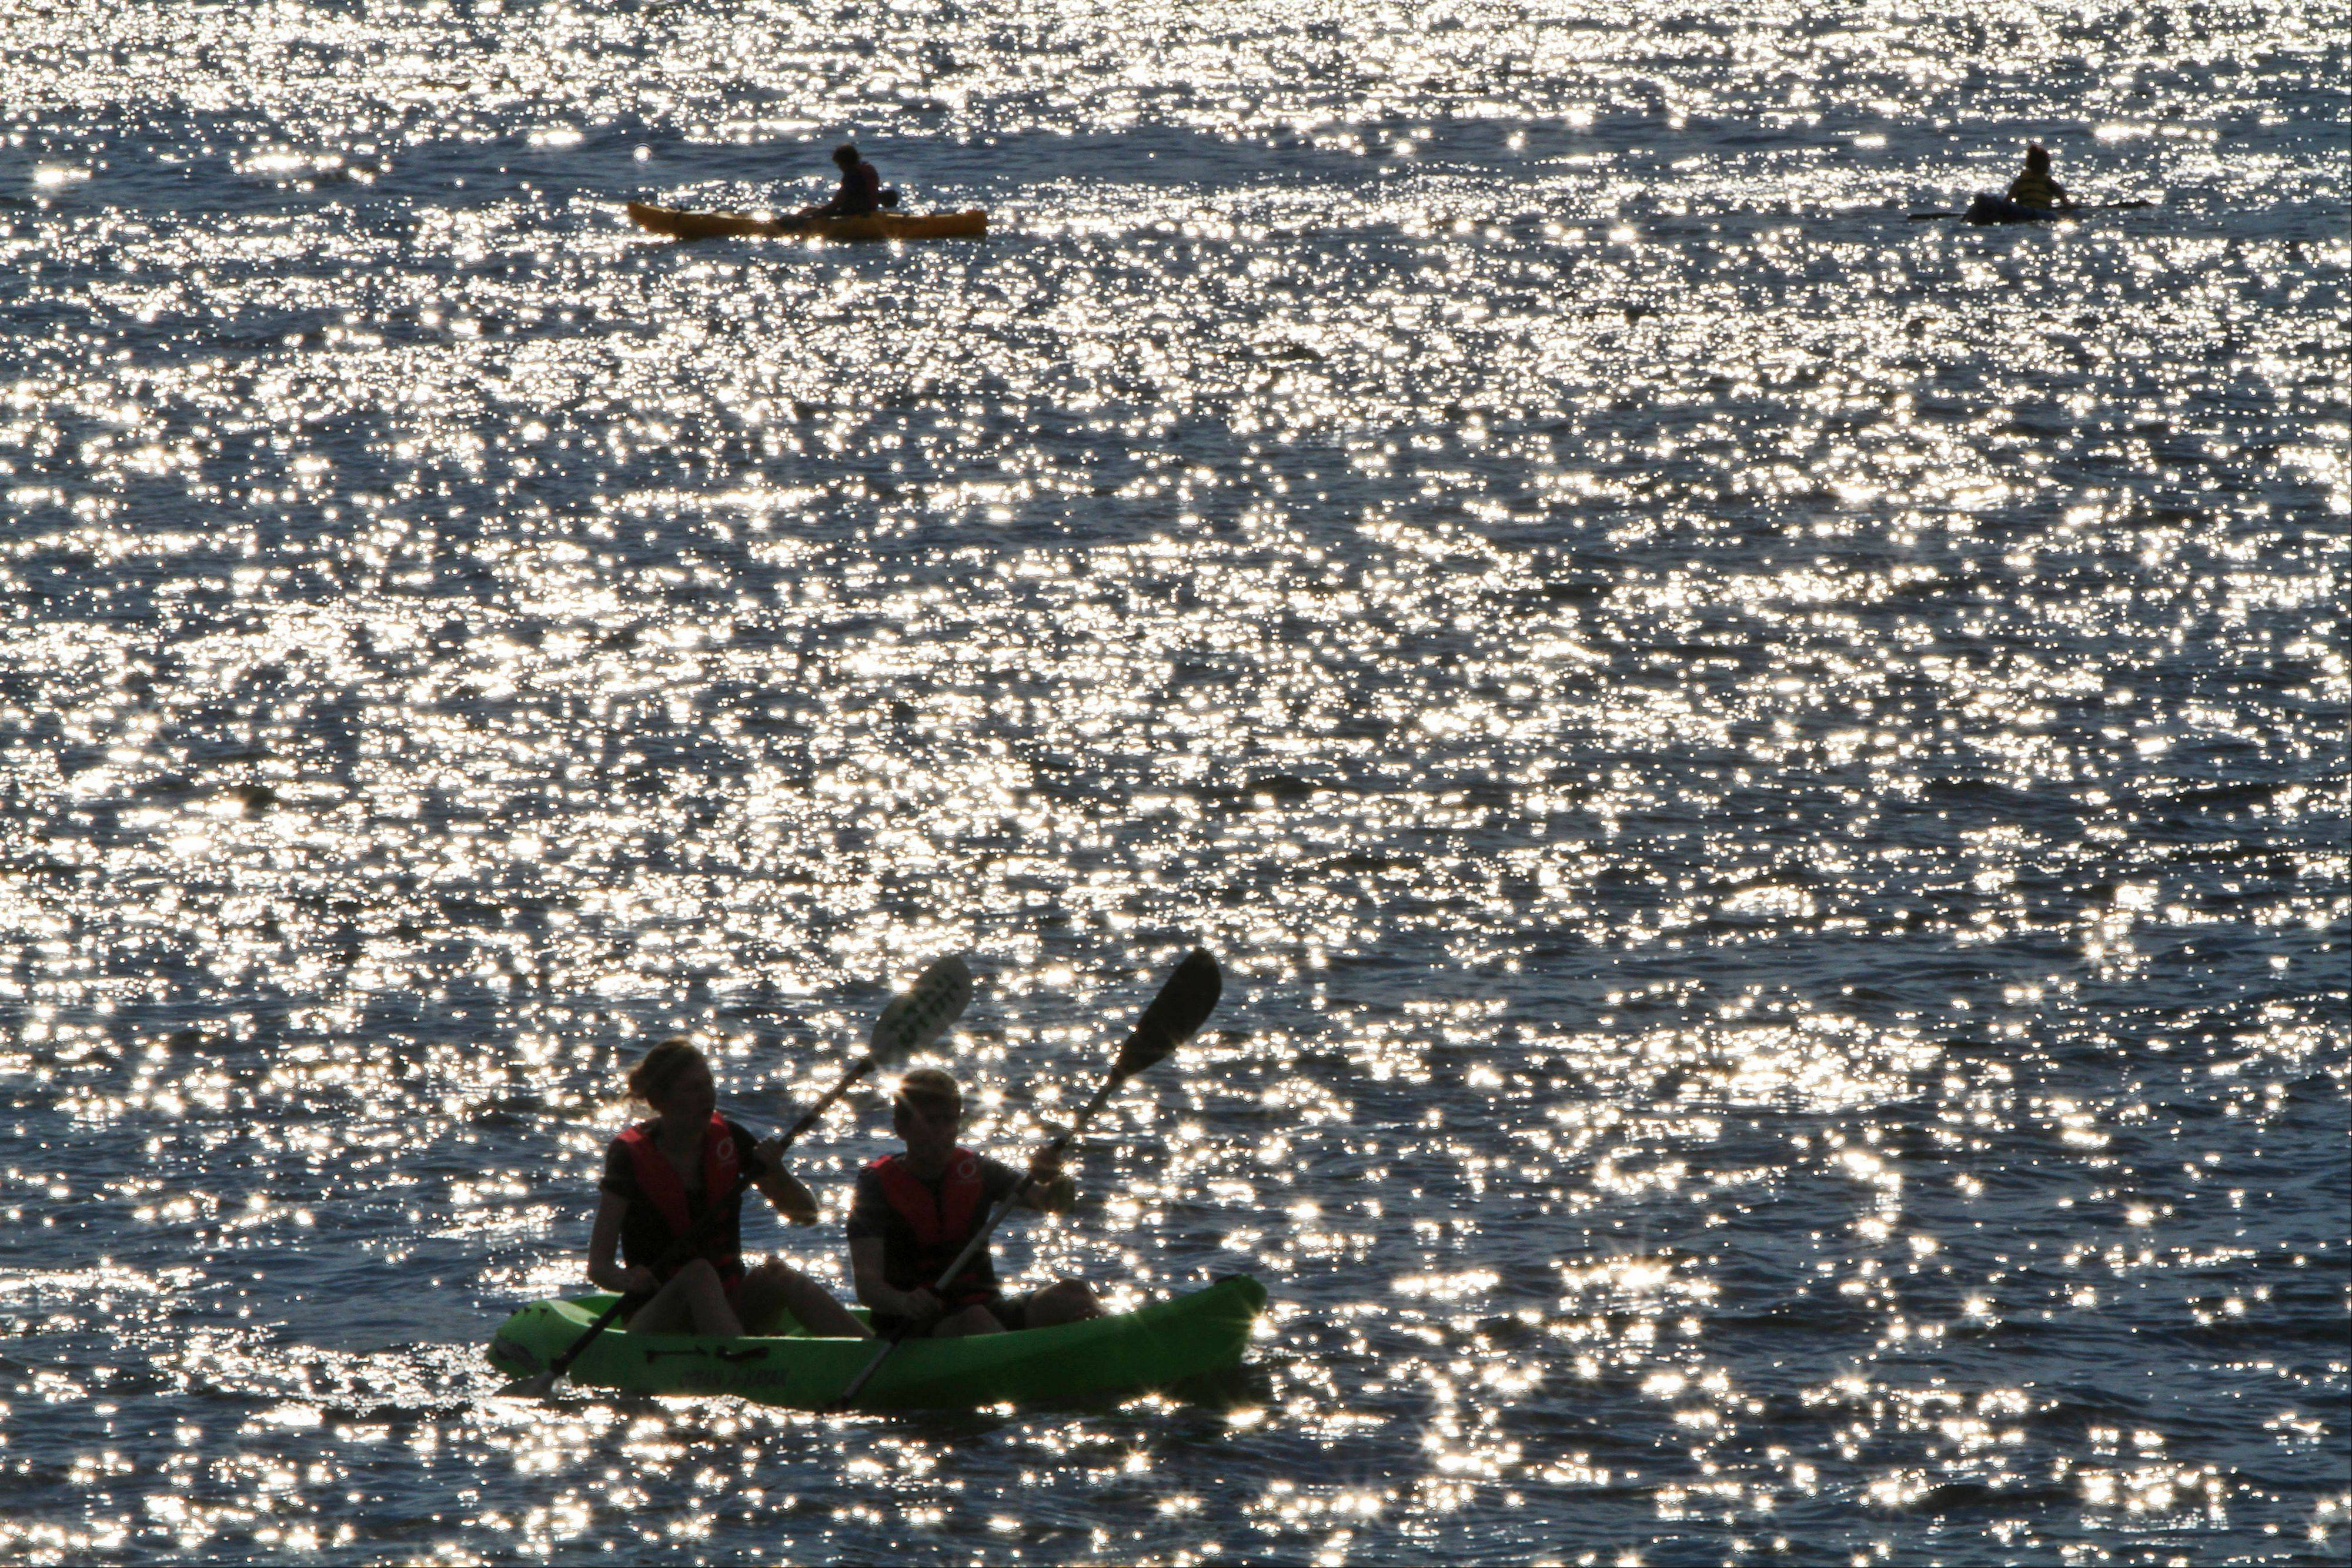 Kayakers paddle in the Hudson River along Hudson River Park.